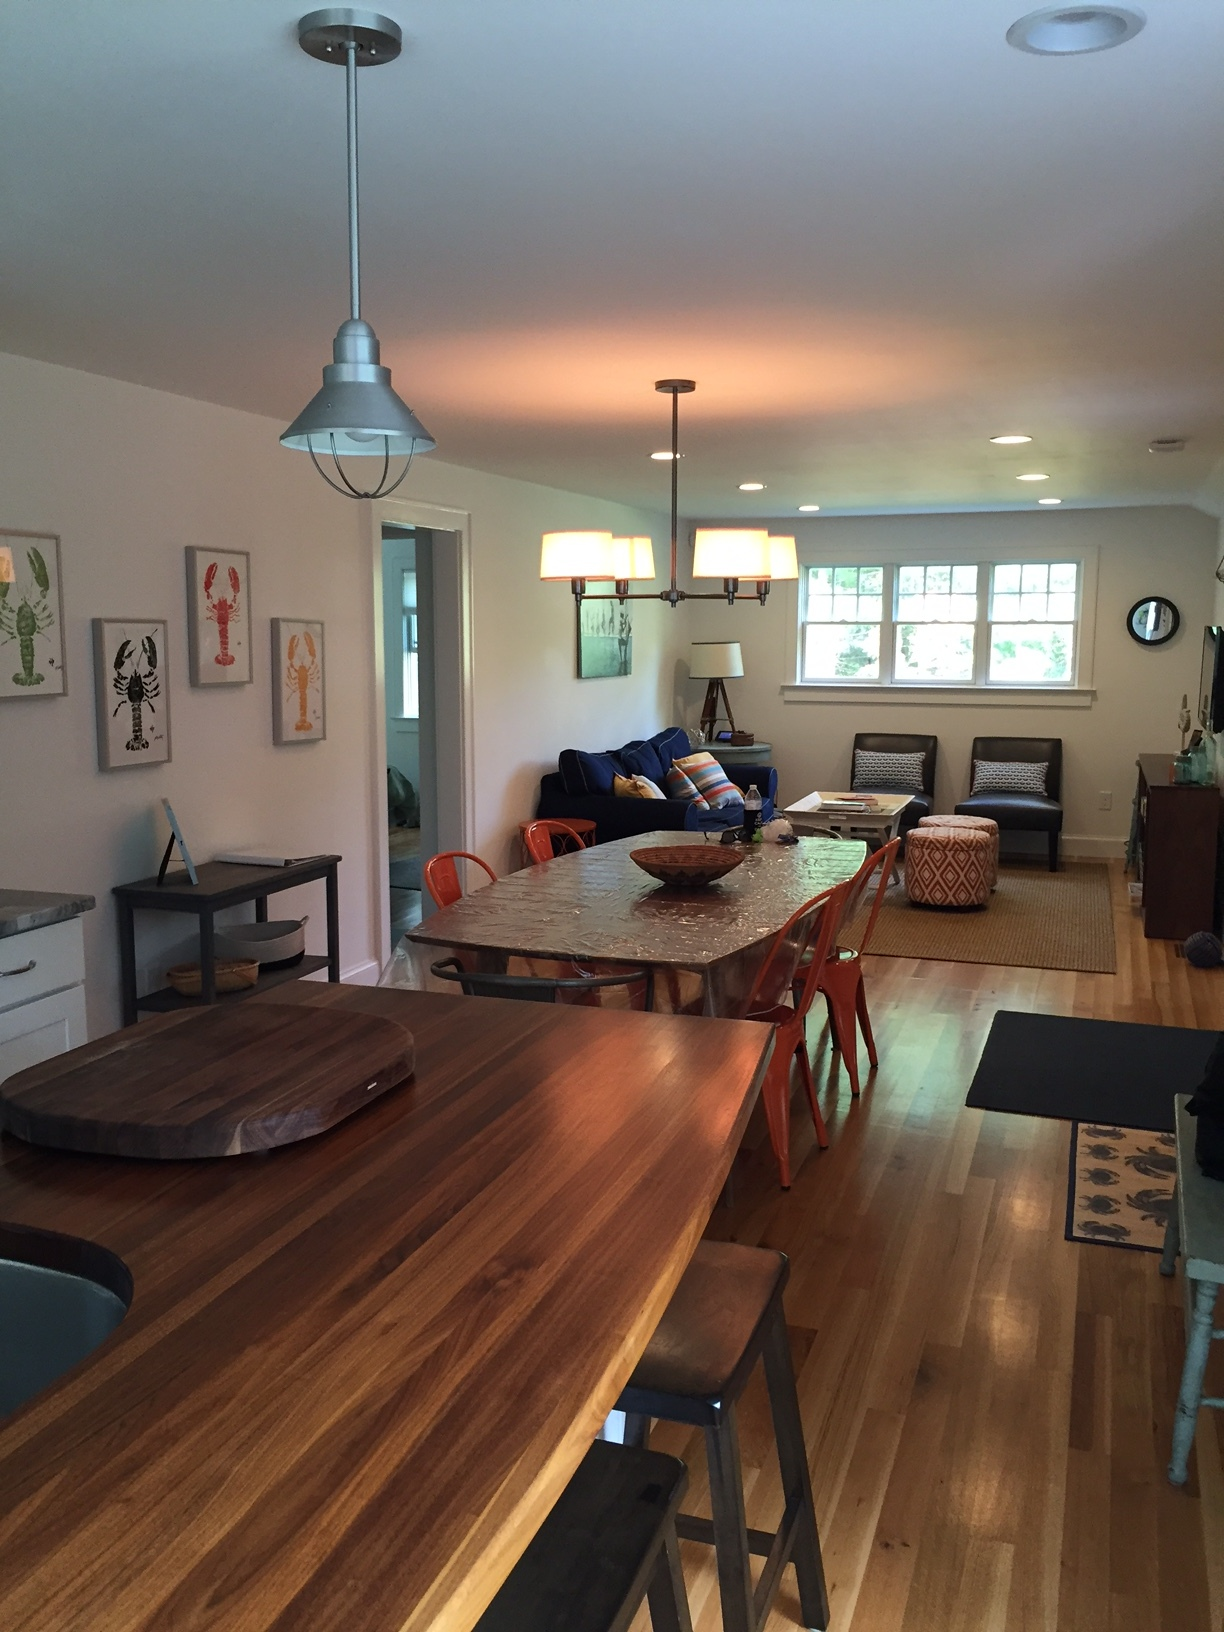 The kitchen, dining and living was open concept. I love the mix of materials and pops of color throughout, especially the  orange Marais chairs  at the dining room table. The  lobster prints  on the wall are from a local artist named John Doherty out of Harwich, MA.